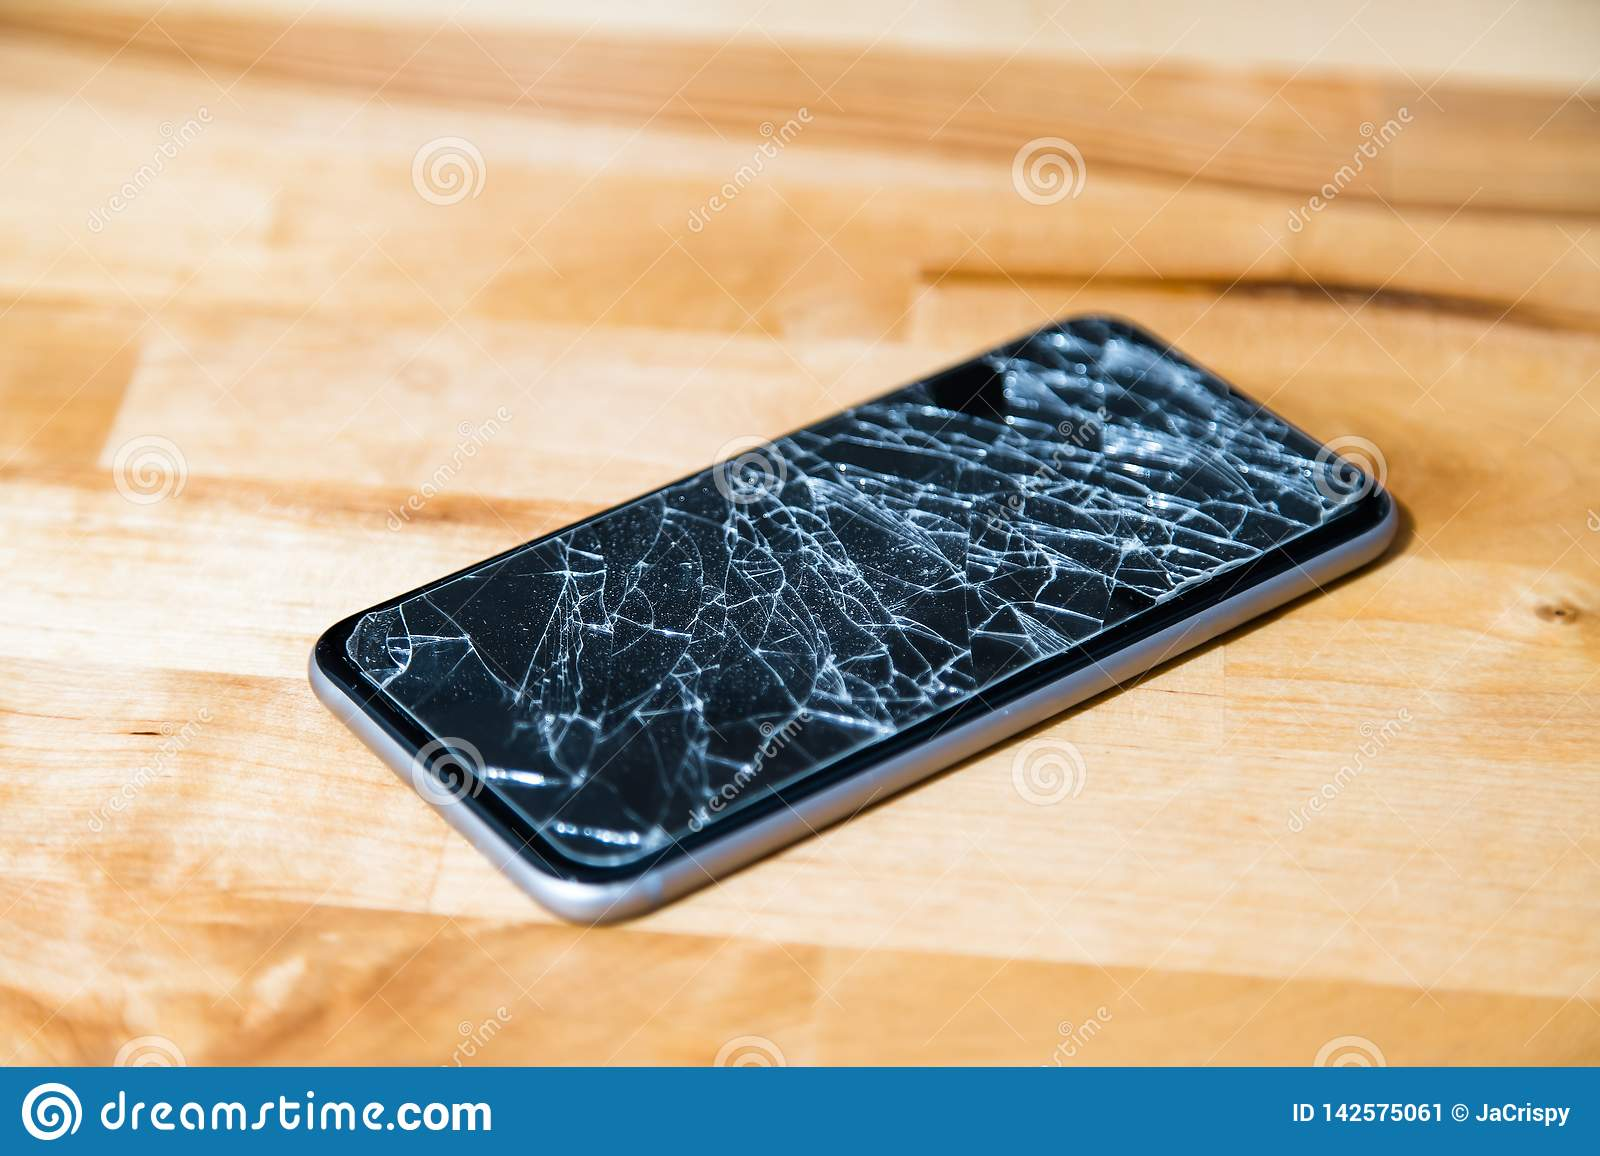 Concept of smart phone with broken screen. Top view on wooden desk background. Cracked, shattered lcd touch screen on modern